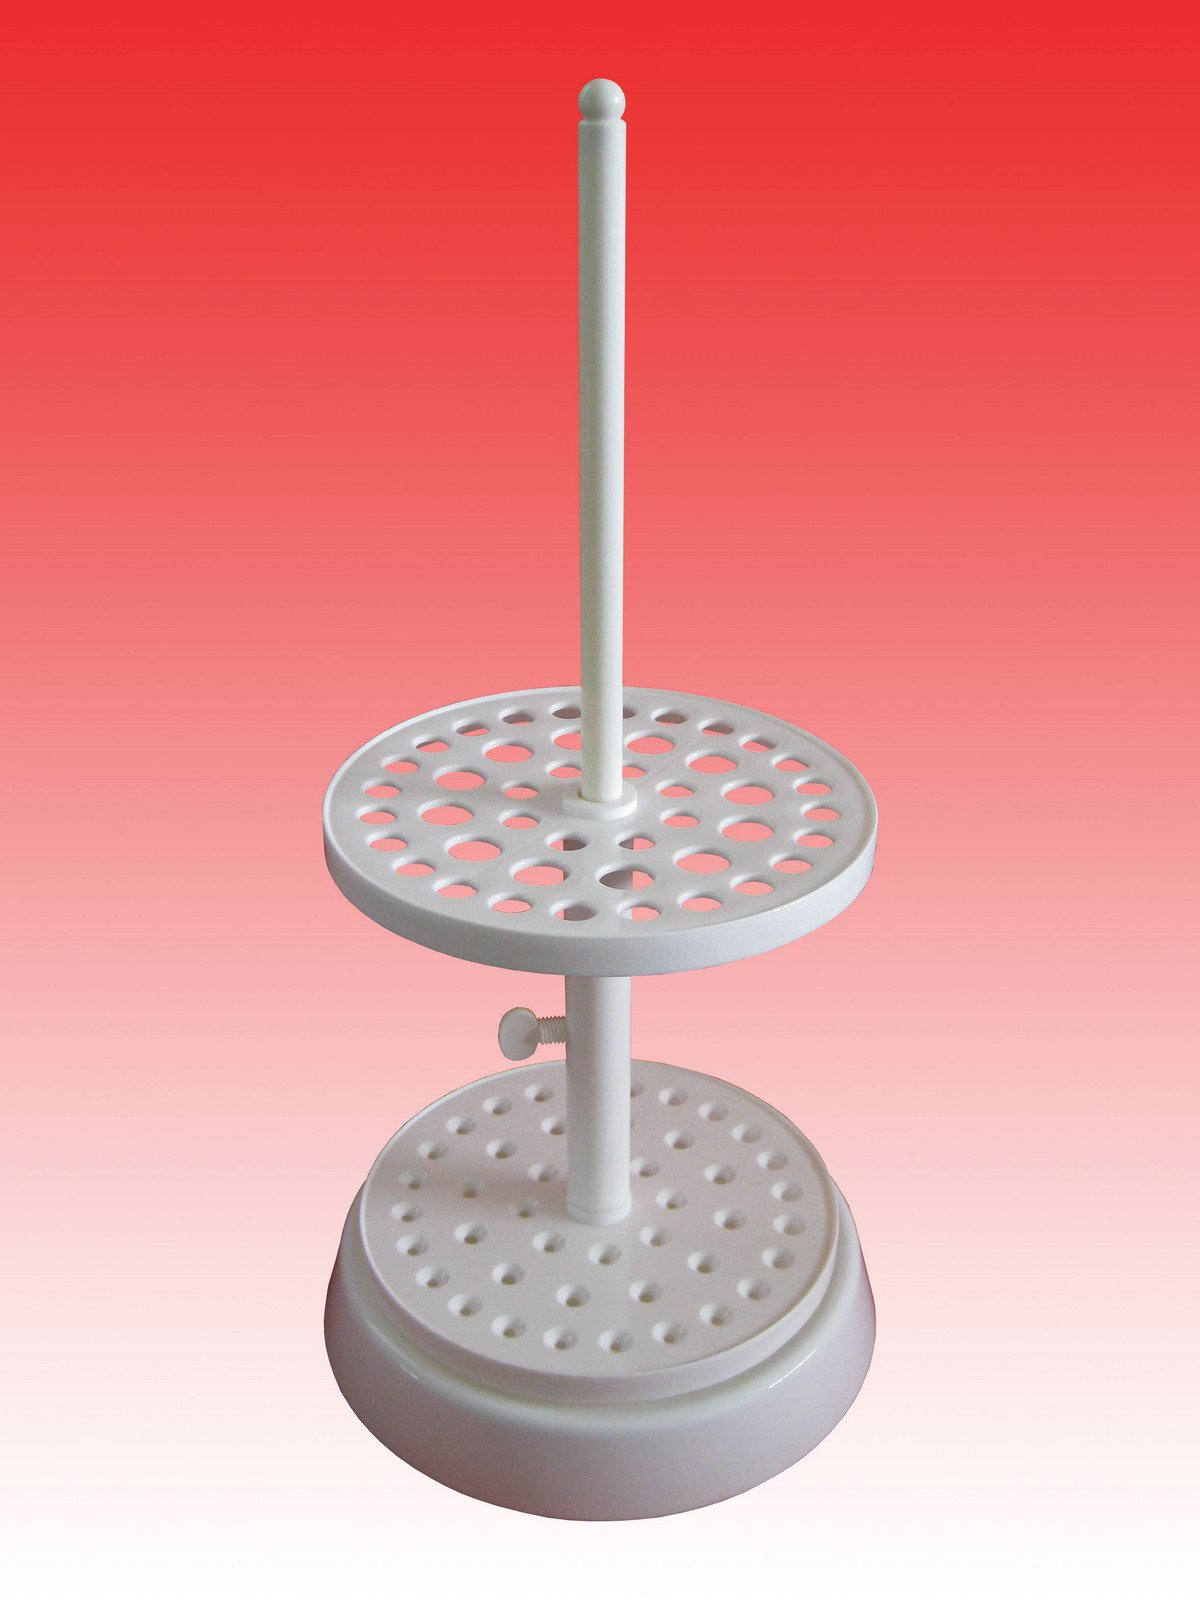 Beyondsupply-44 Place Plastics Round Polymethyl Pipette Pipettor Stand With Base